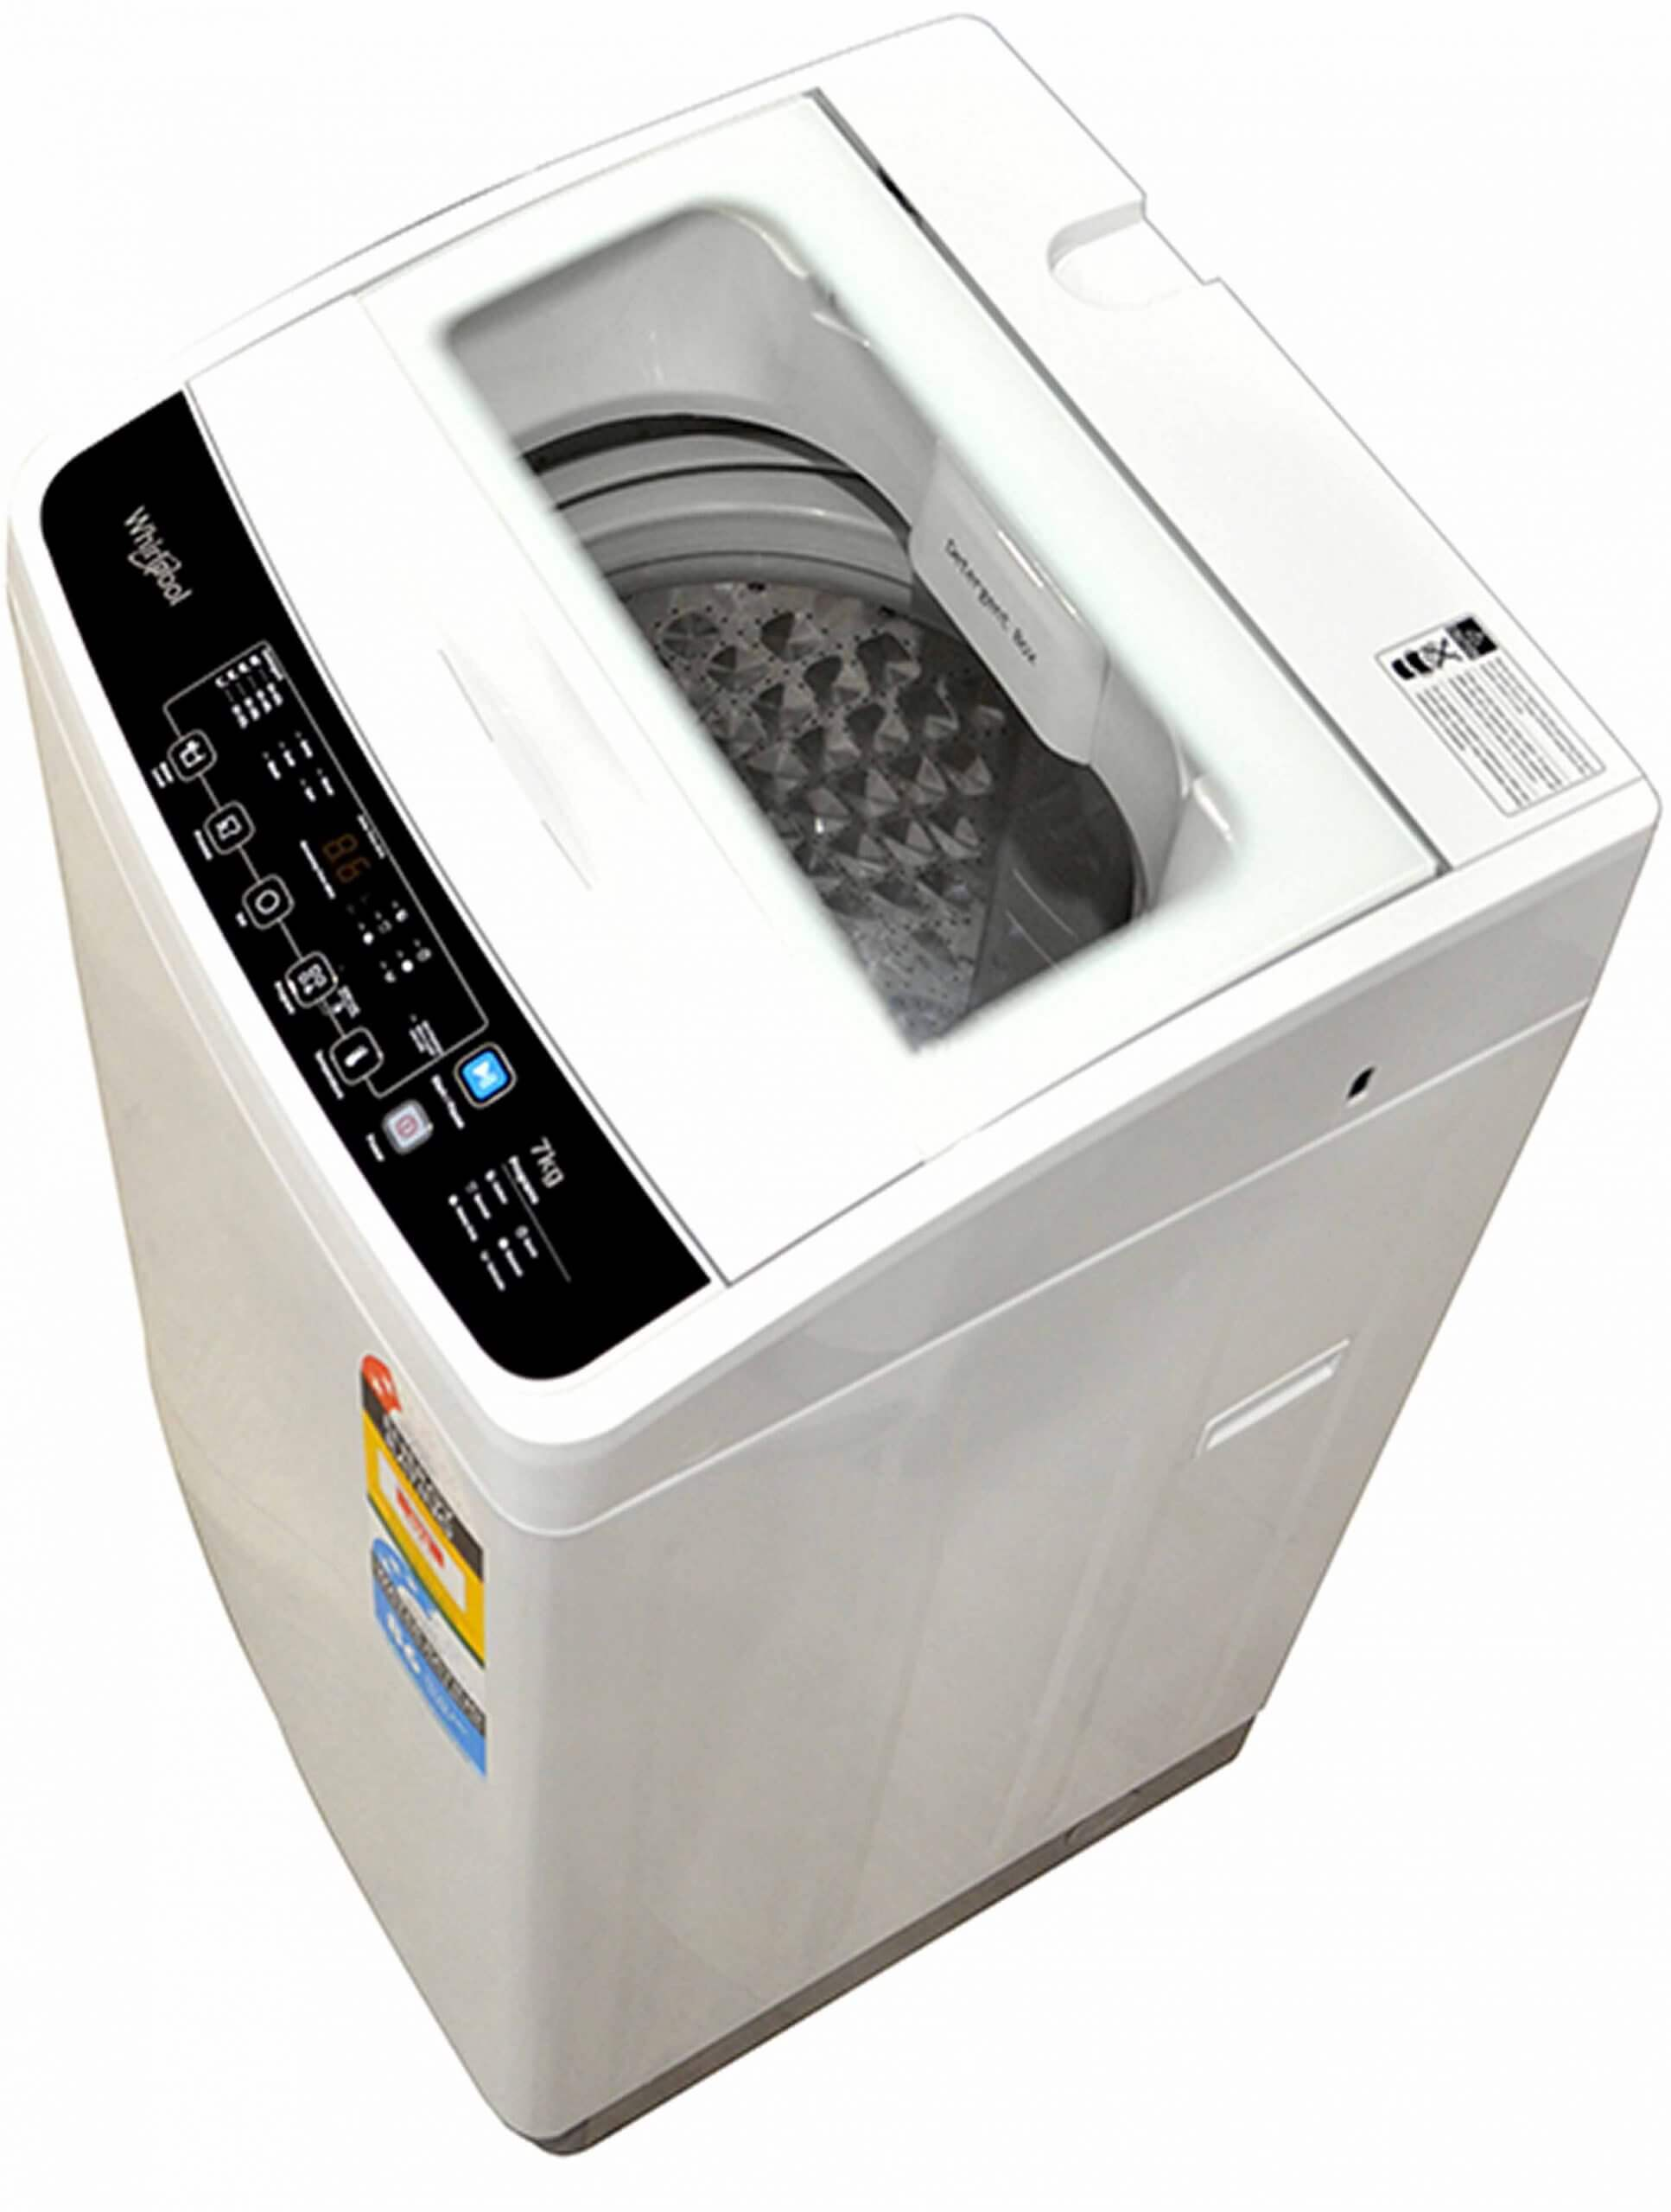 3: The Best Top Loader and Most Cost-Effective: WB10037 & WB70803 Top Loader Washing Machine